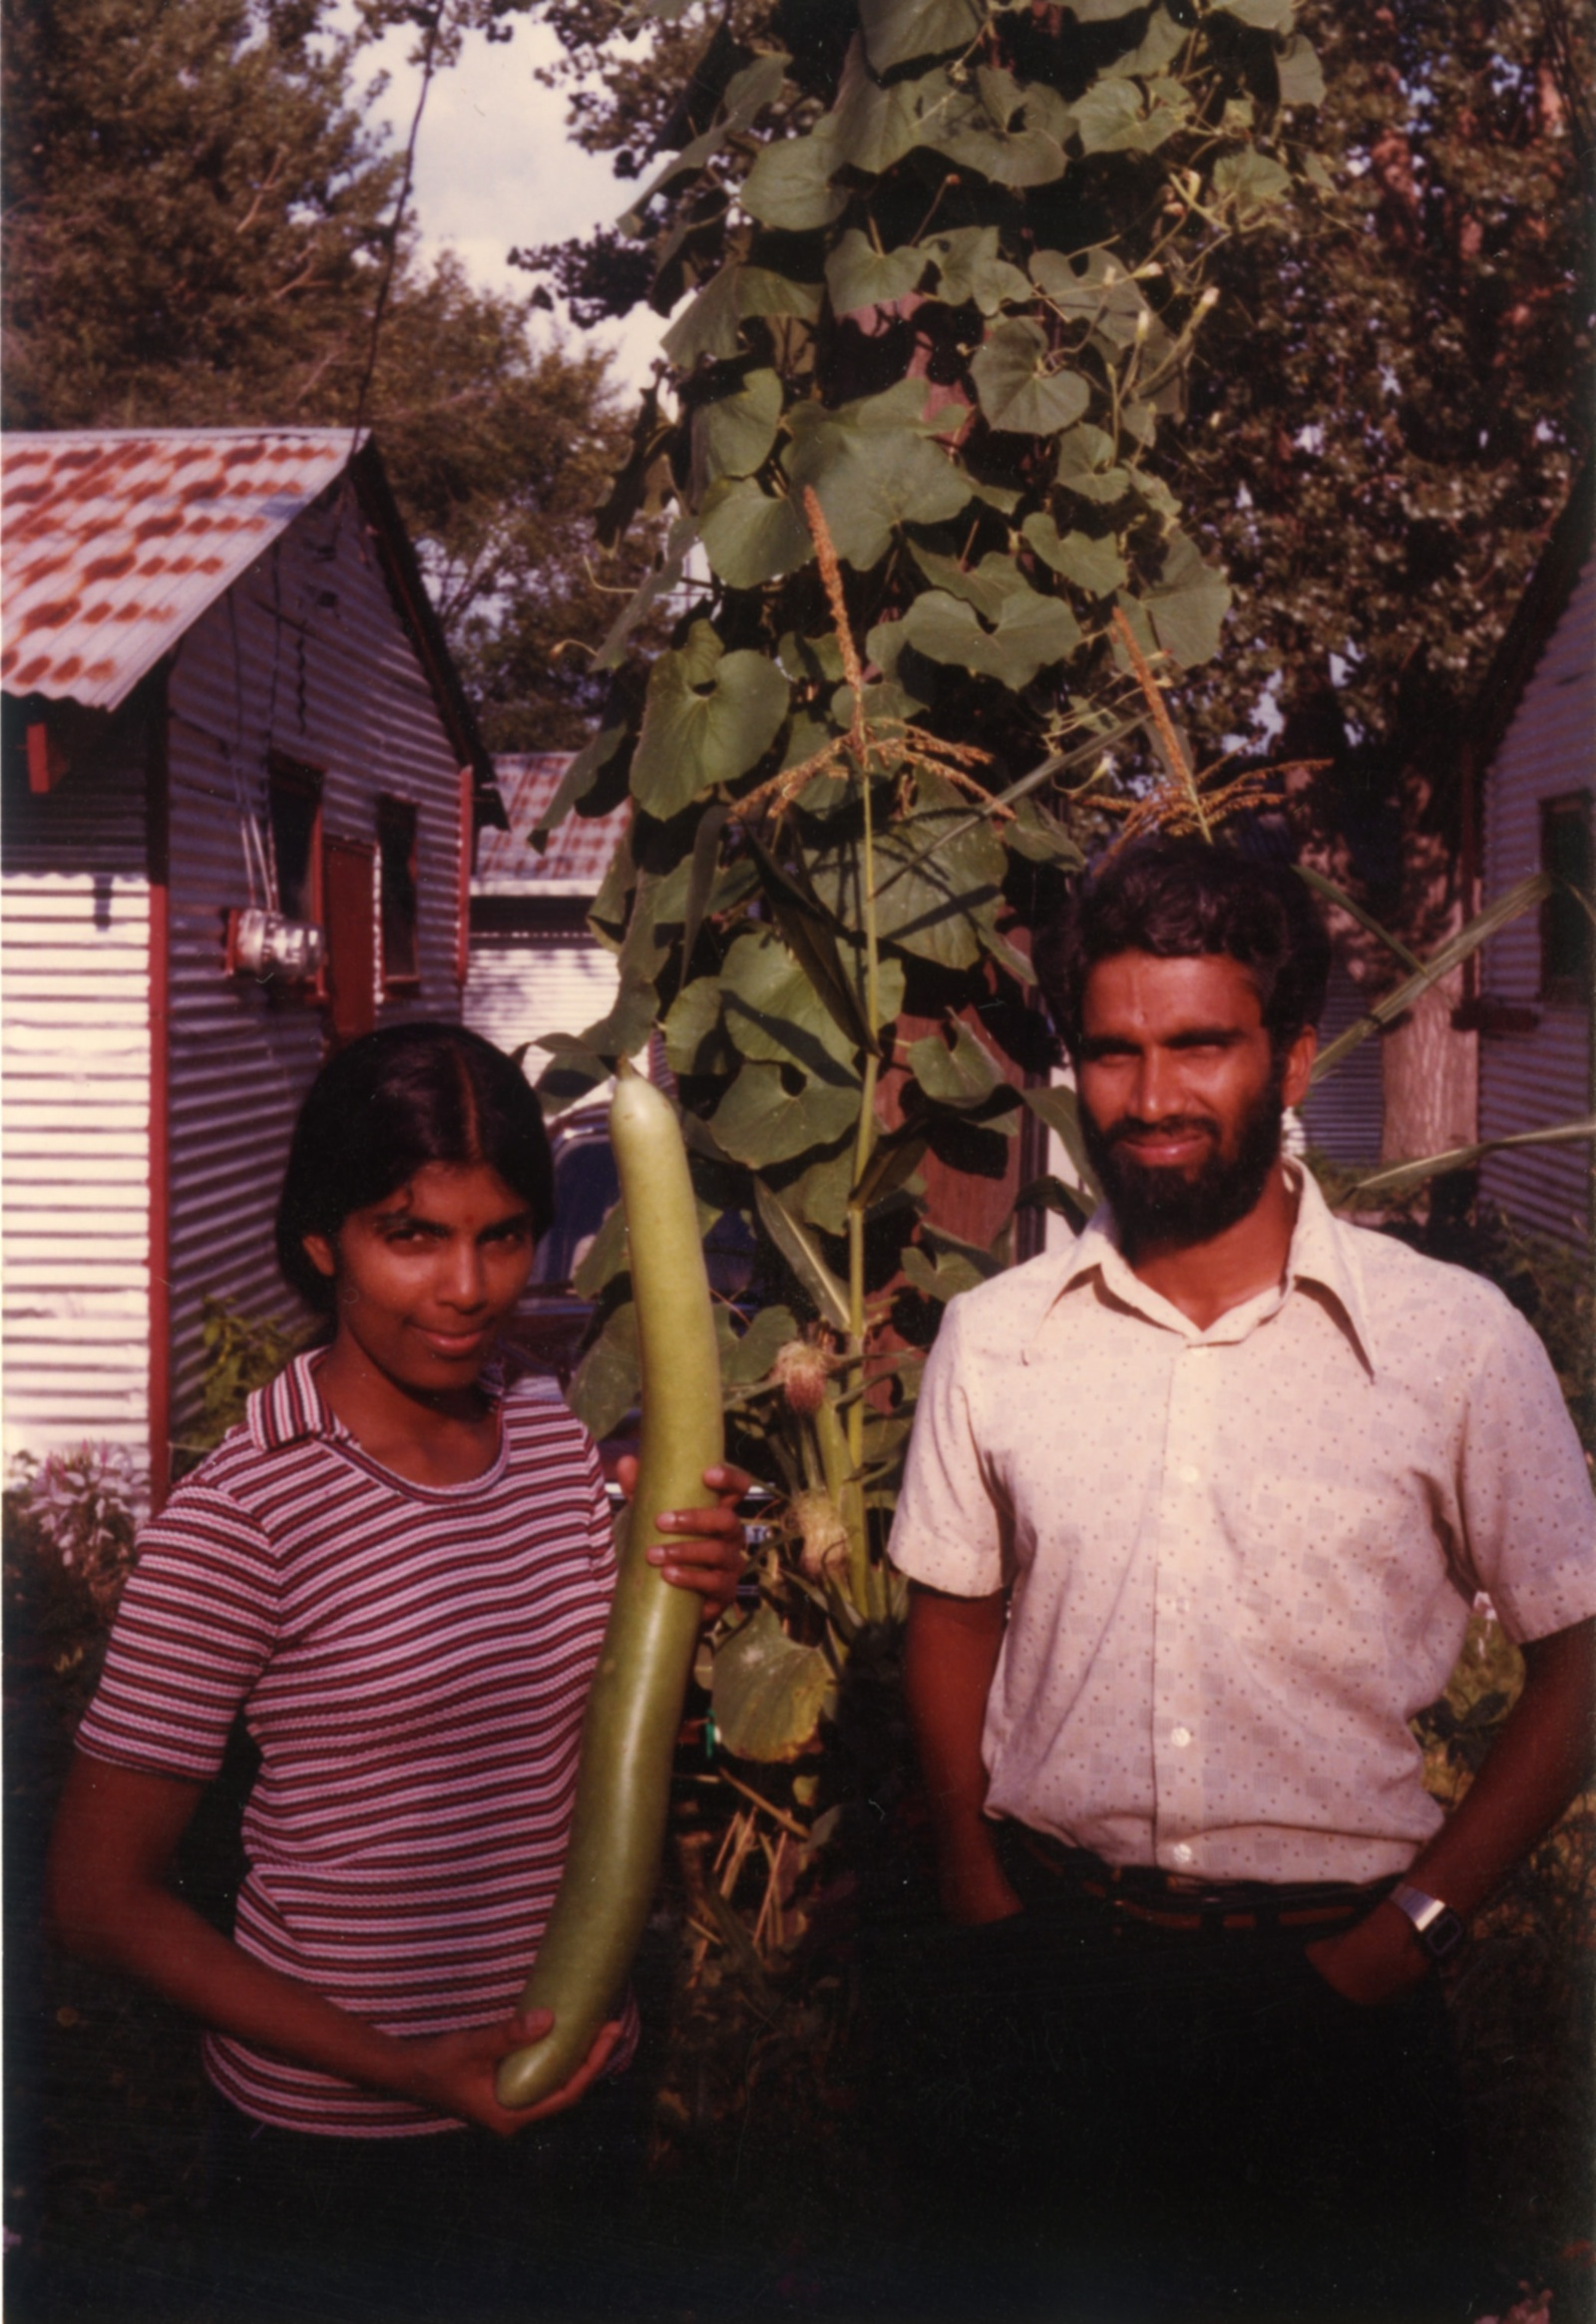 Satya and Vijay with vine at home of Janet Jepeway in Pammel Court. August 1981.